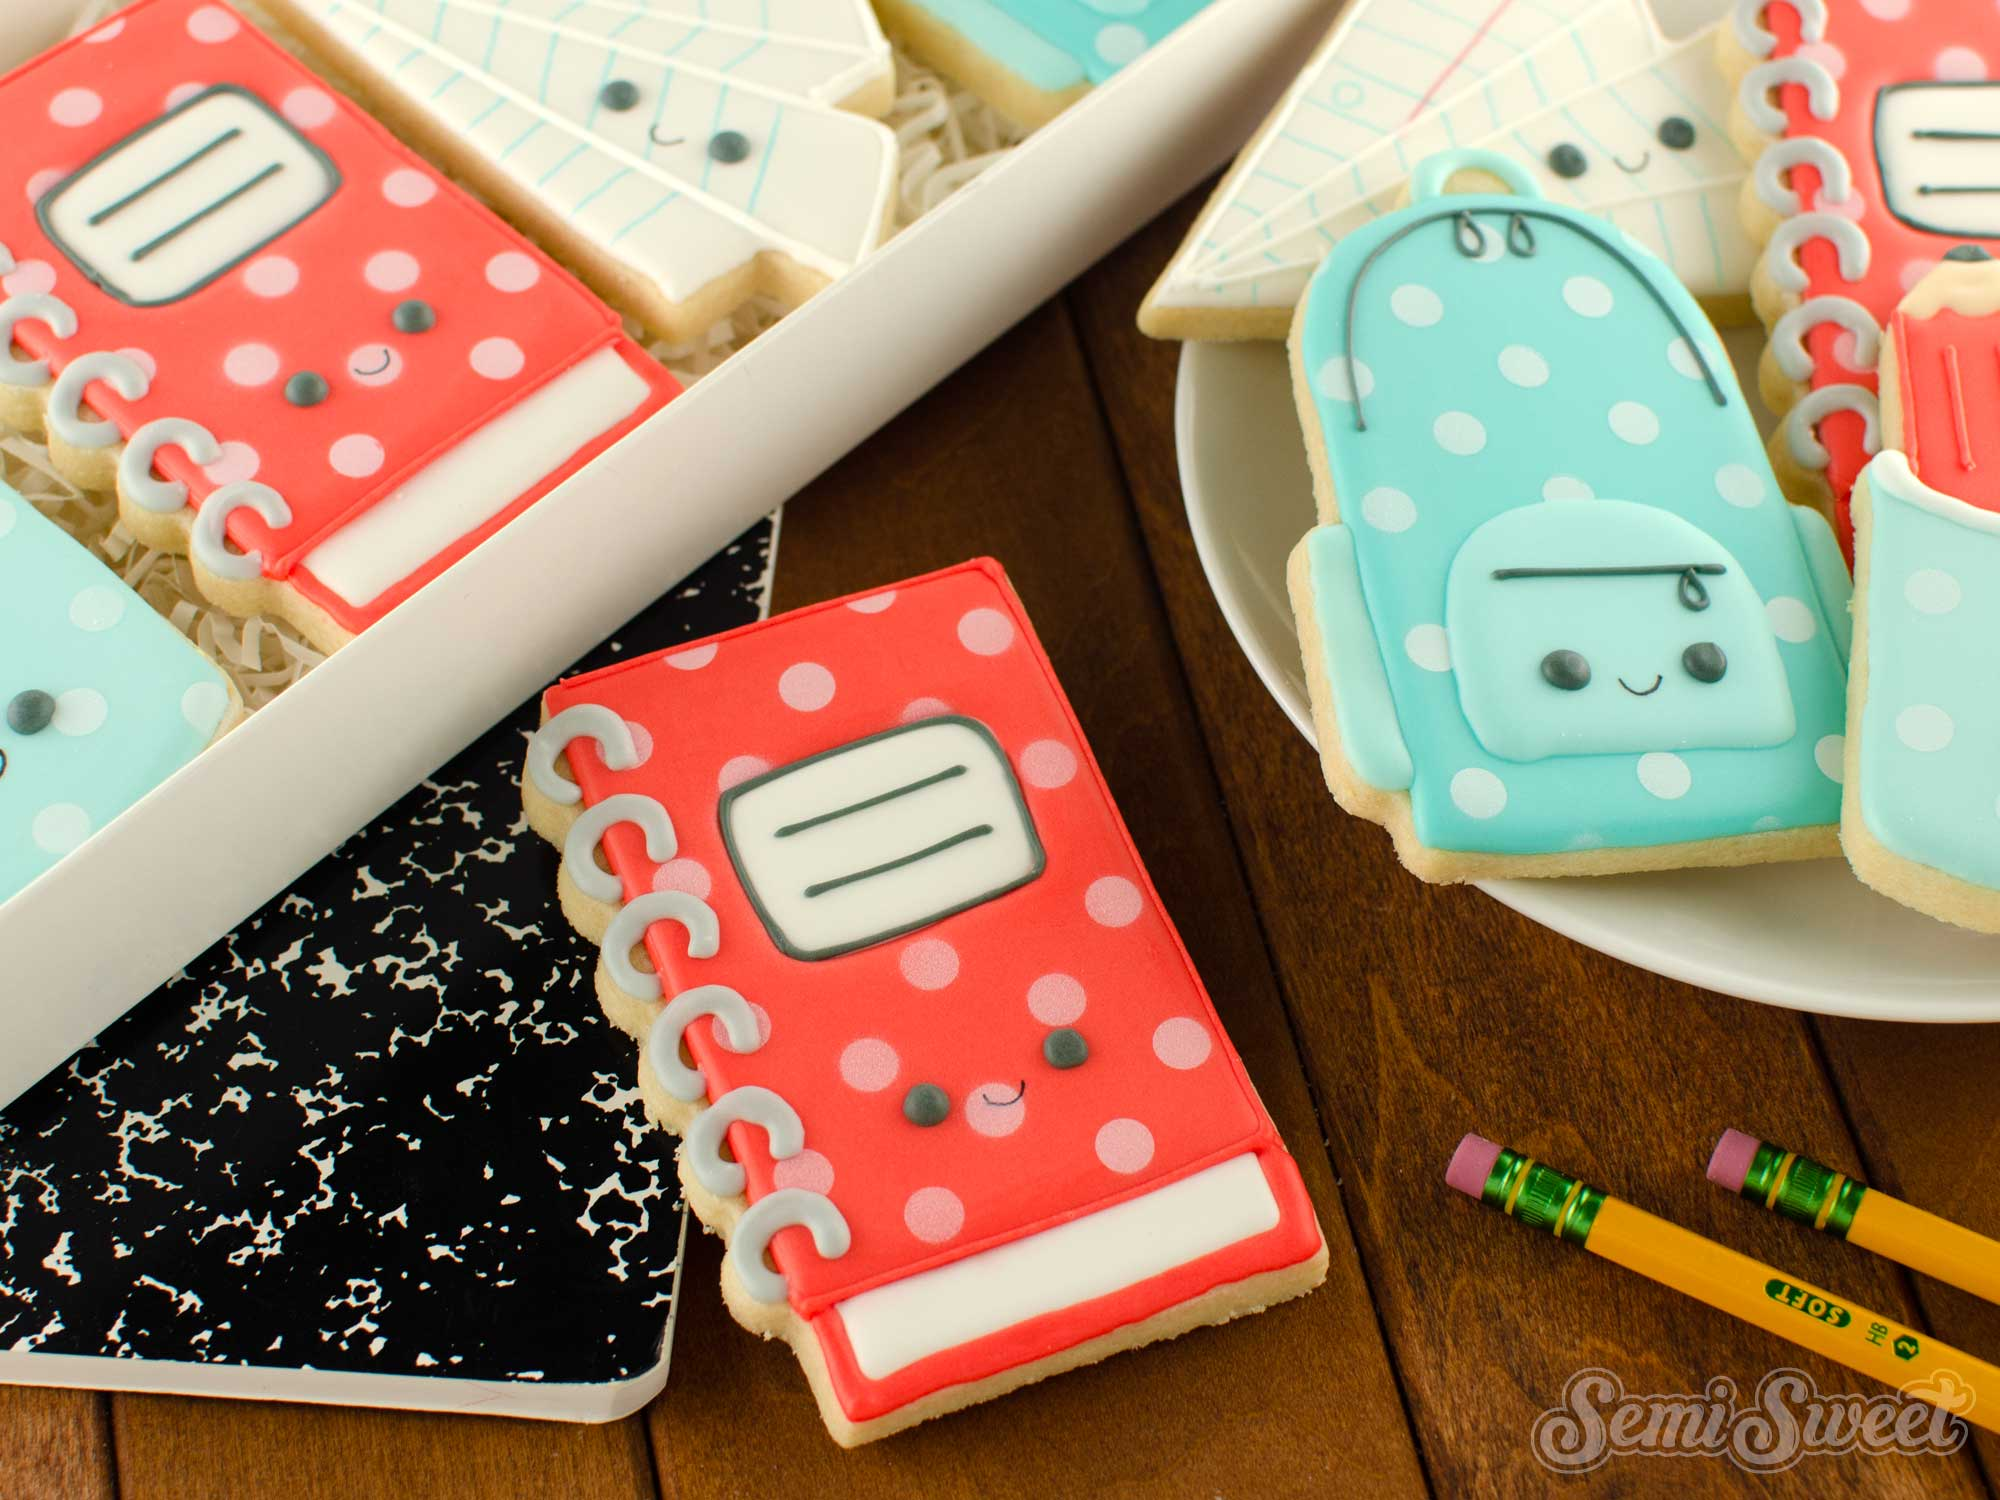 How to Make Spiral Notebook Cookies